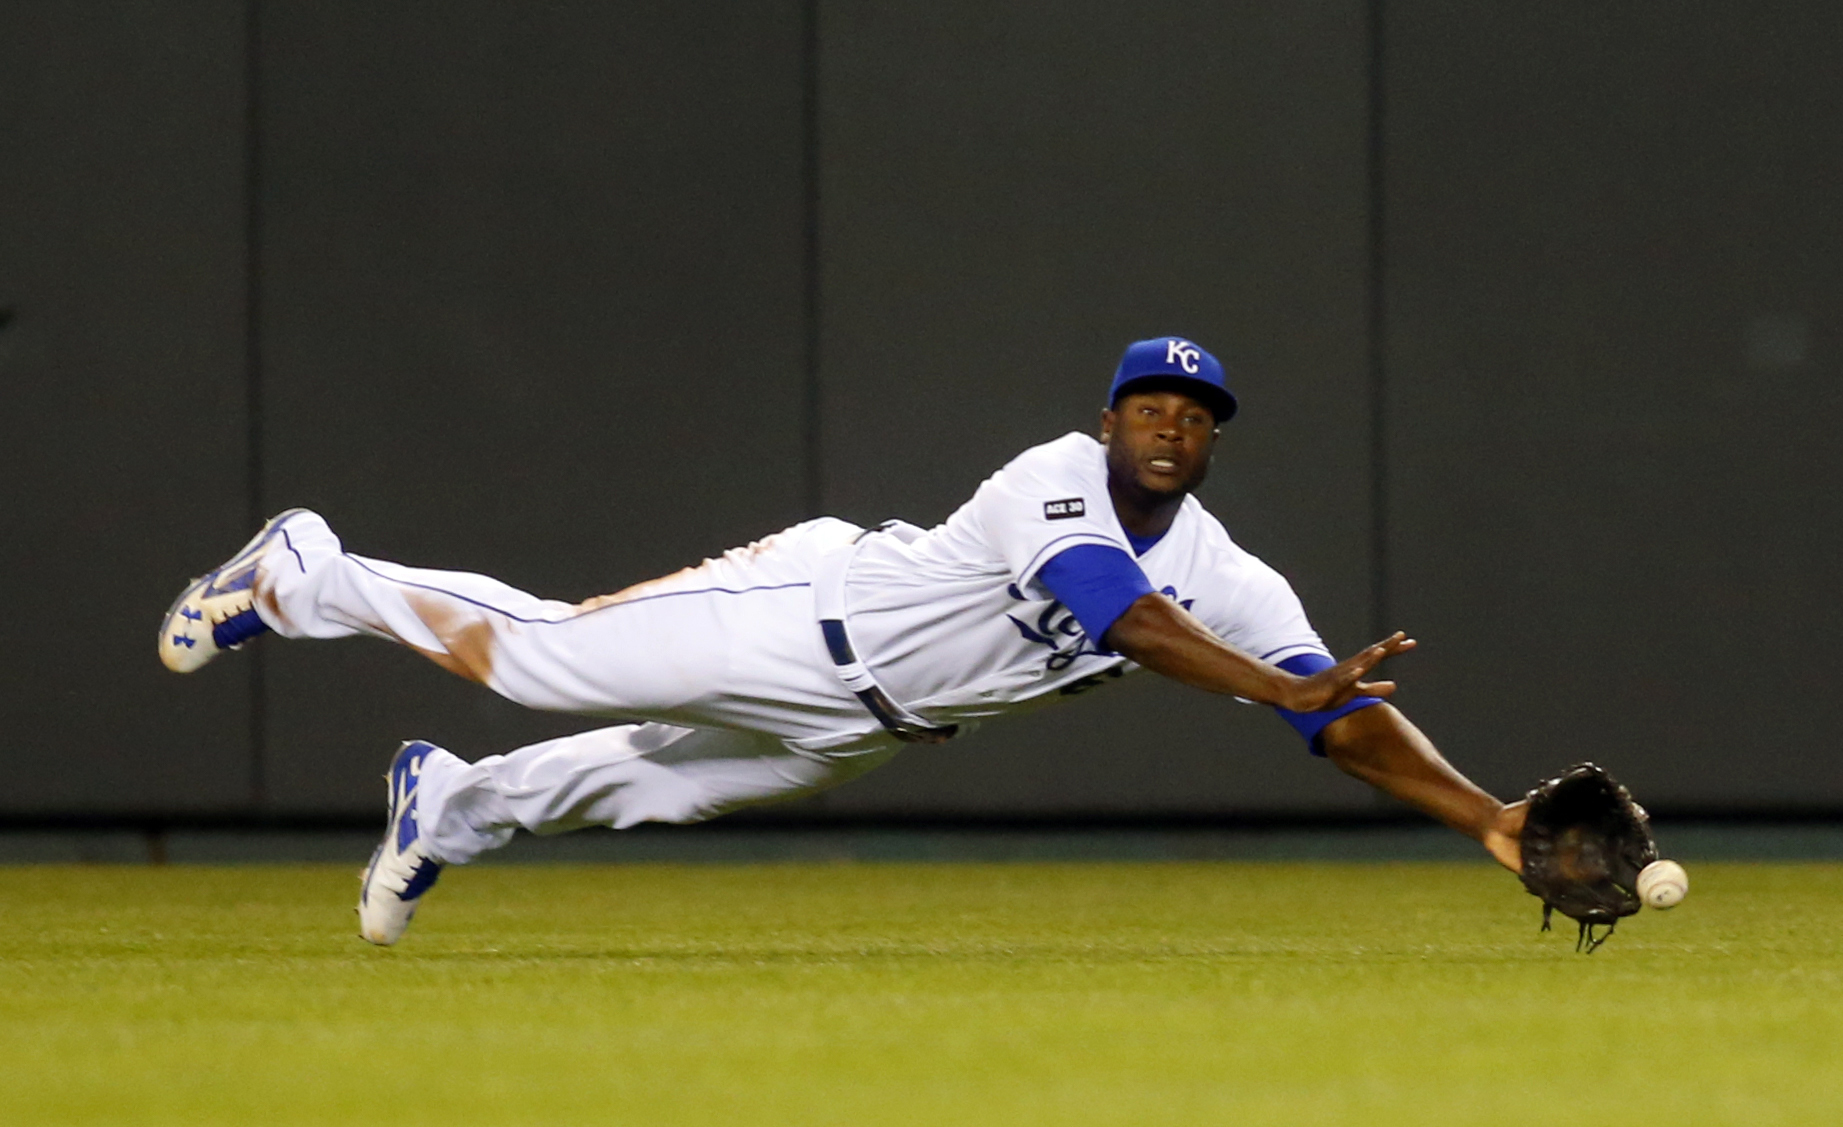 Apr 18, 2017; Kansas City, MO, USA; Kansas City Royals center fielder Lorenzo Cain (6) dives for a ball in the eleventh inning of the game against the San Francisco Giants at Kauffman Stadium. The Giants won 2-1. Mandatory Credit: Jay Biggerstaff-USA TODAY Sports